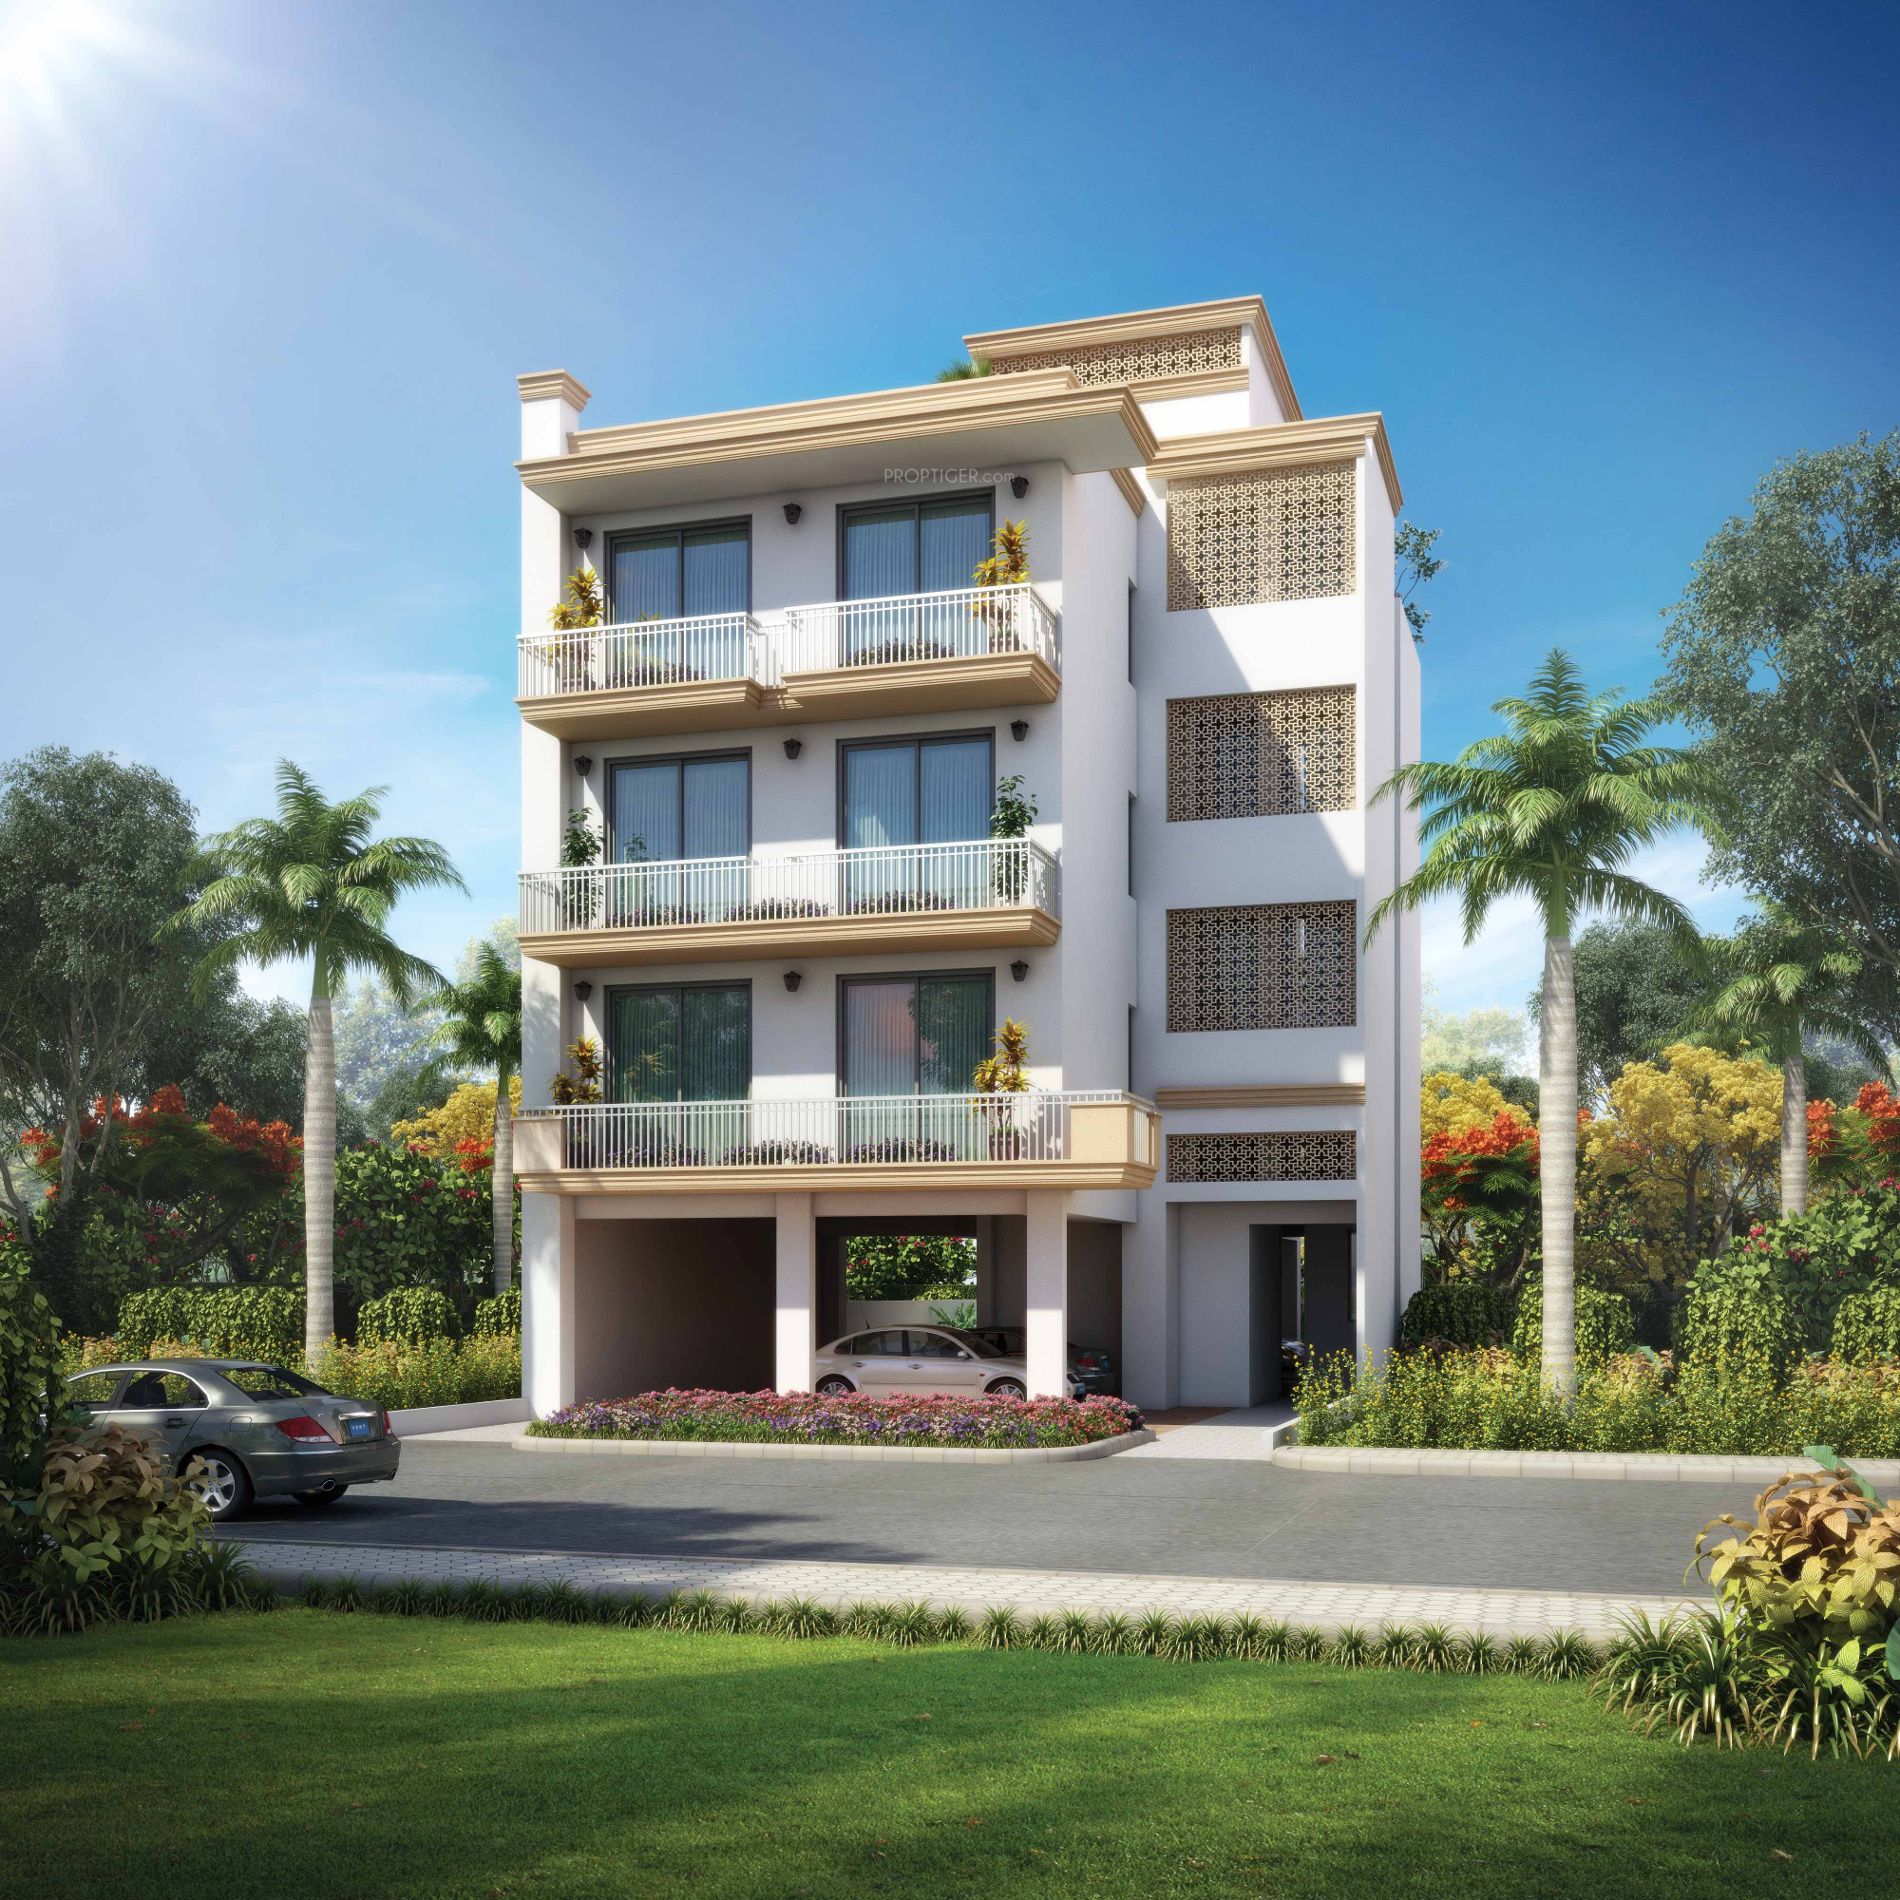 DLF Hyde Park In Mullanpur, Mohali